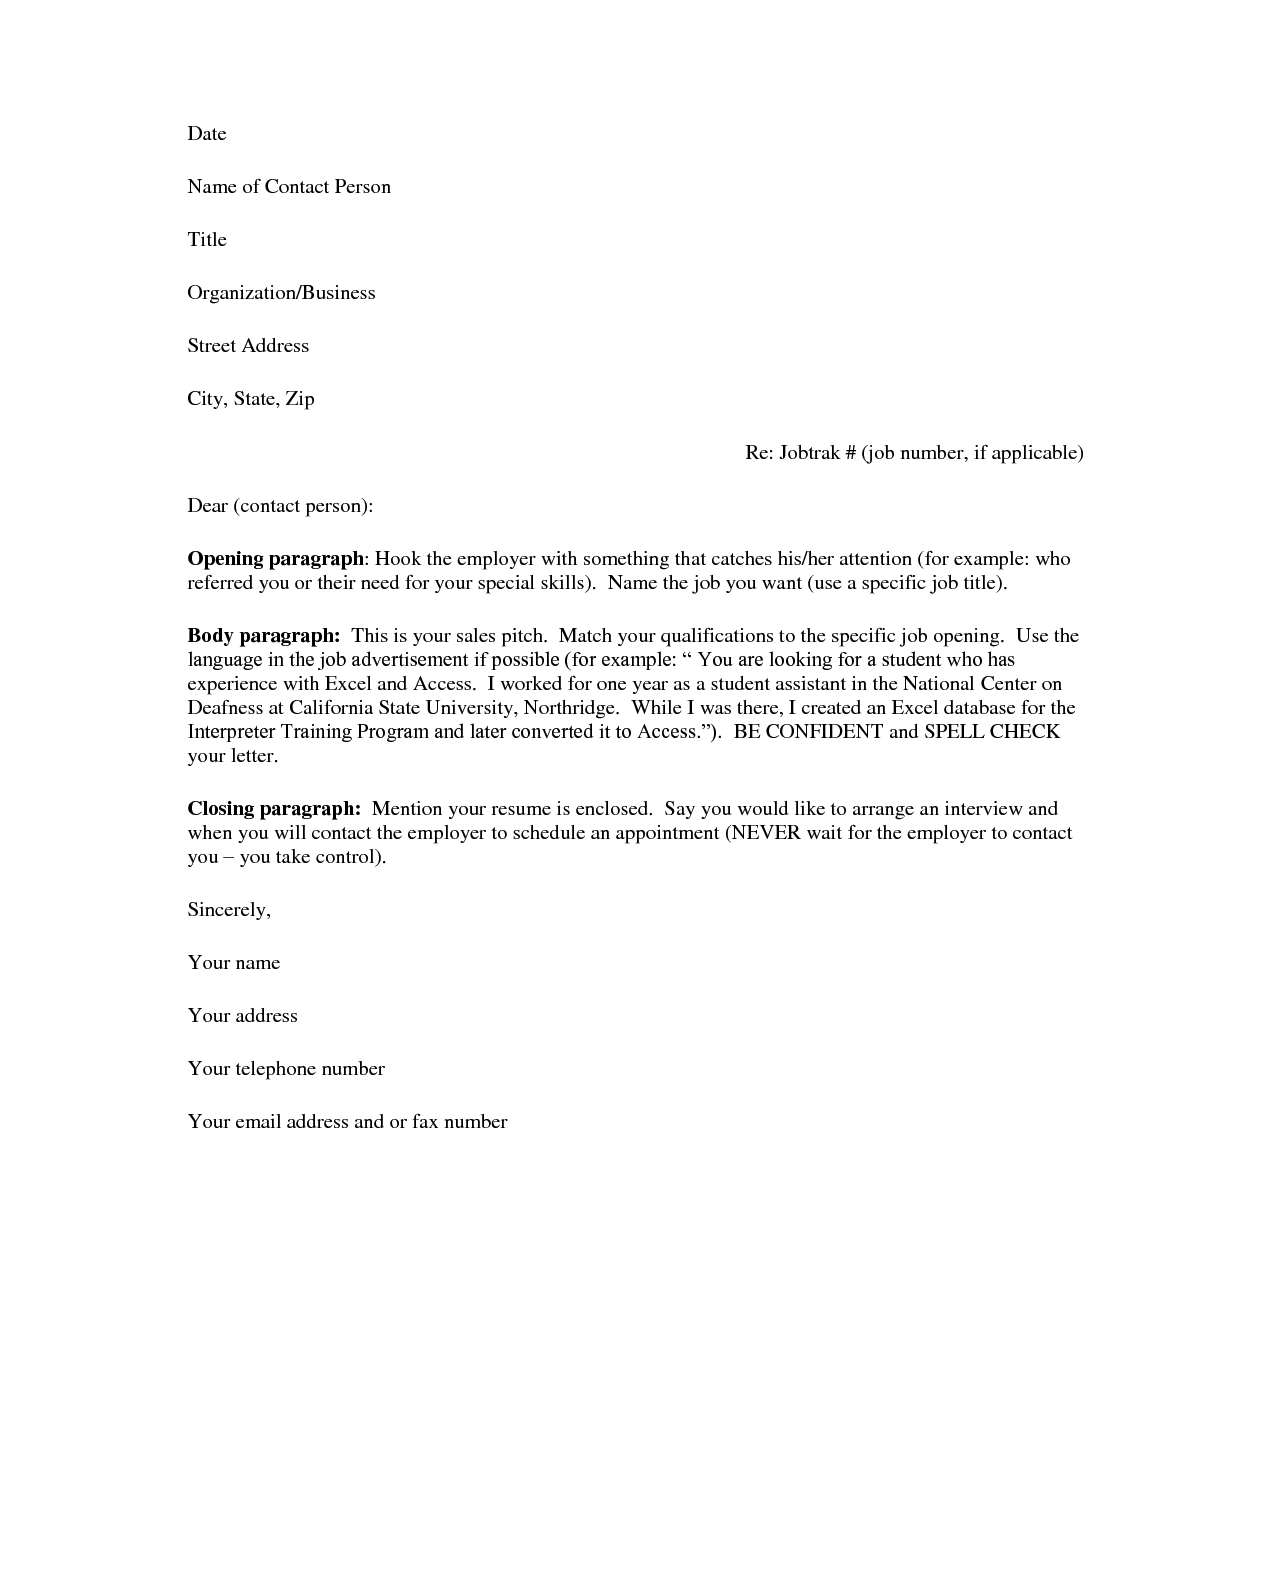 Resume Example, Urban Pie Resume Cover Letter Example ~ Resume Cover Letter  Example Tips  Sample Resume And Cover Letter